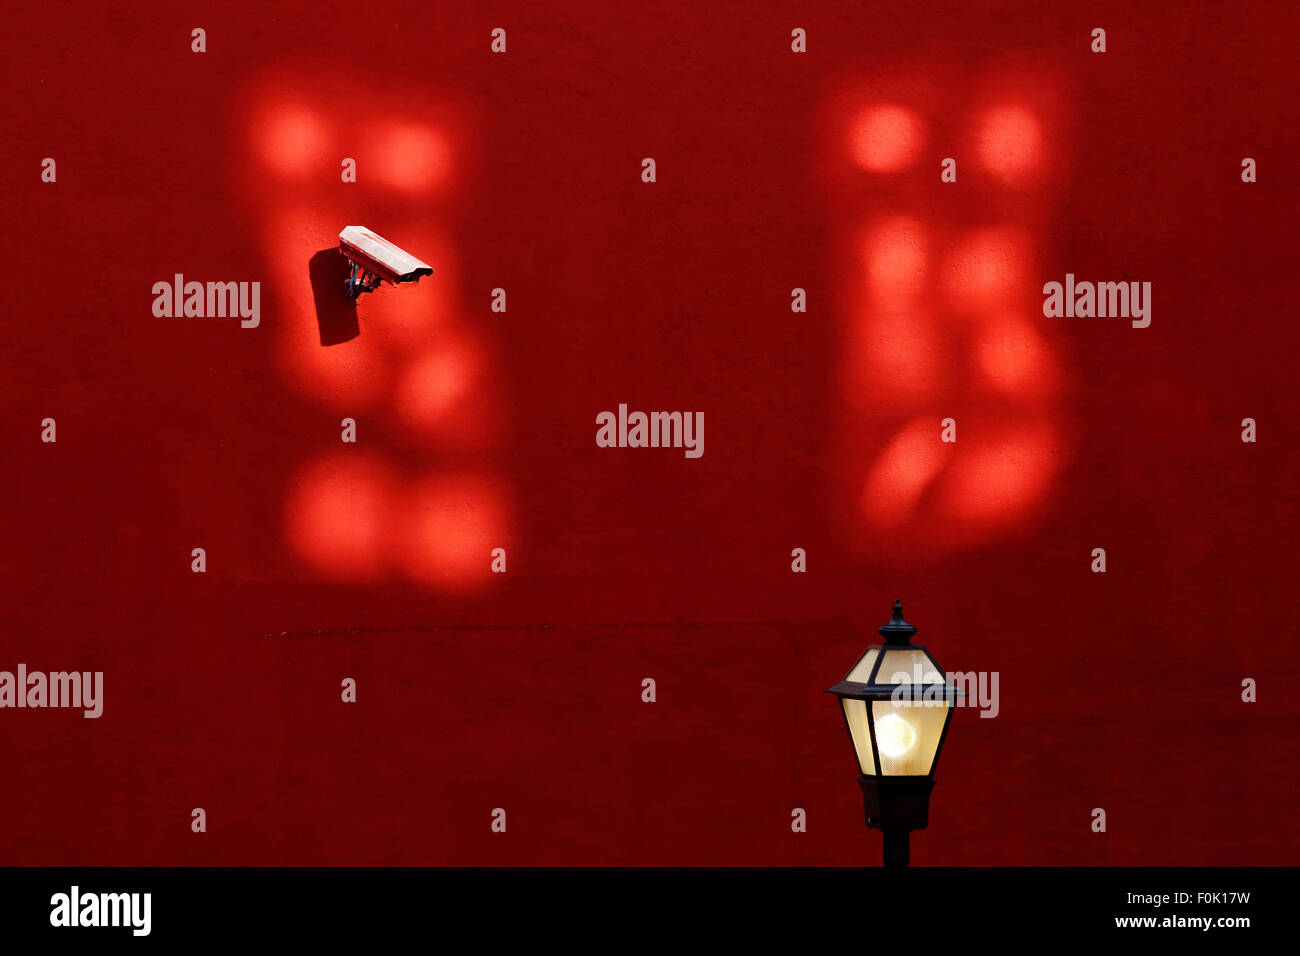 Urban alley behind shops. Red wall, security camera, streetlight and window reflection. - Stock Image